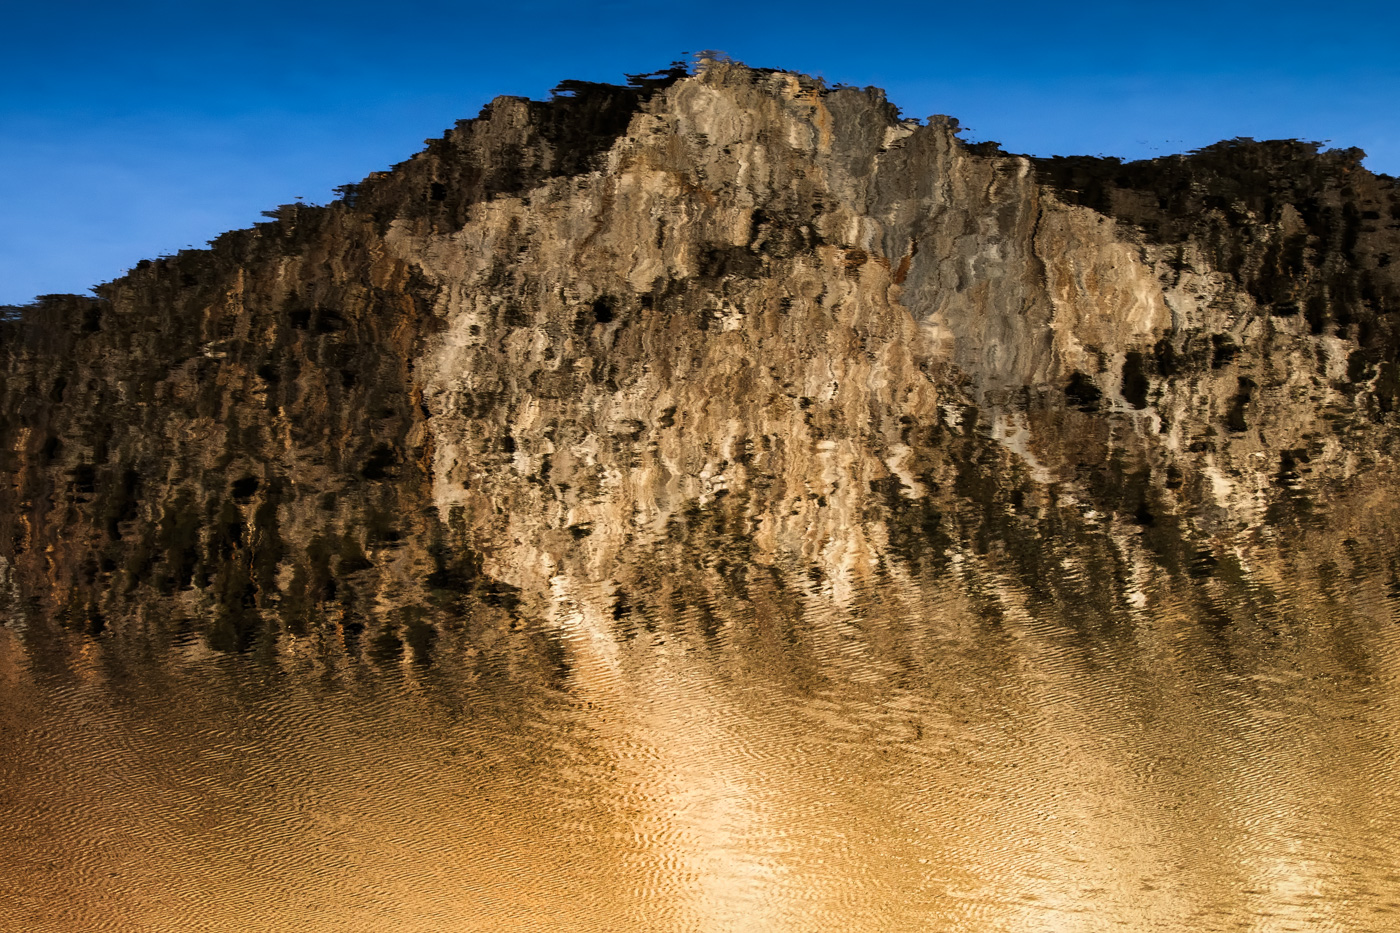 Convict Lake Shore - Eastern Sierra - Abstract Reflections